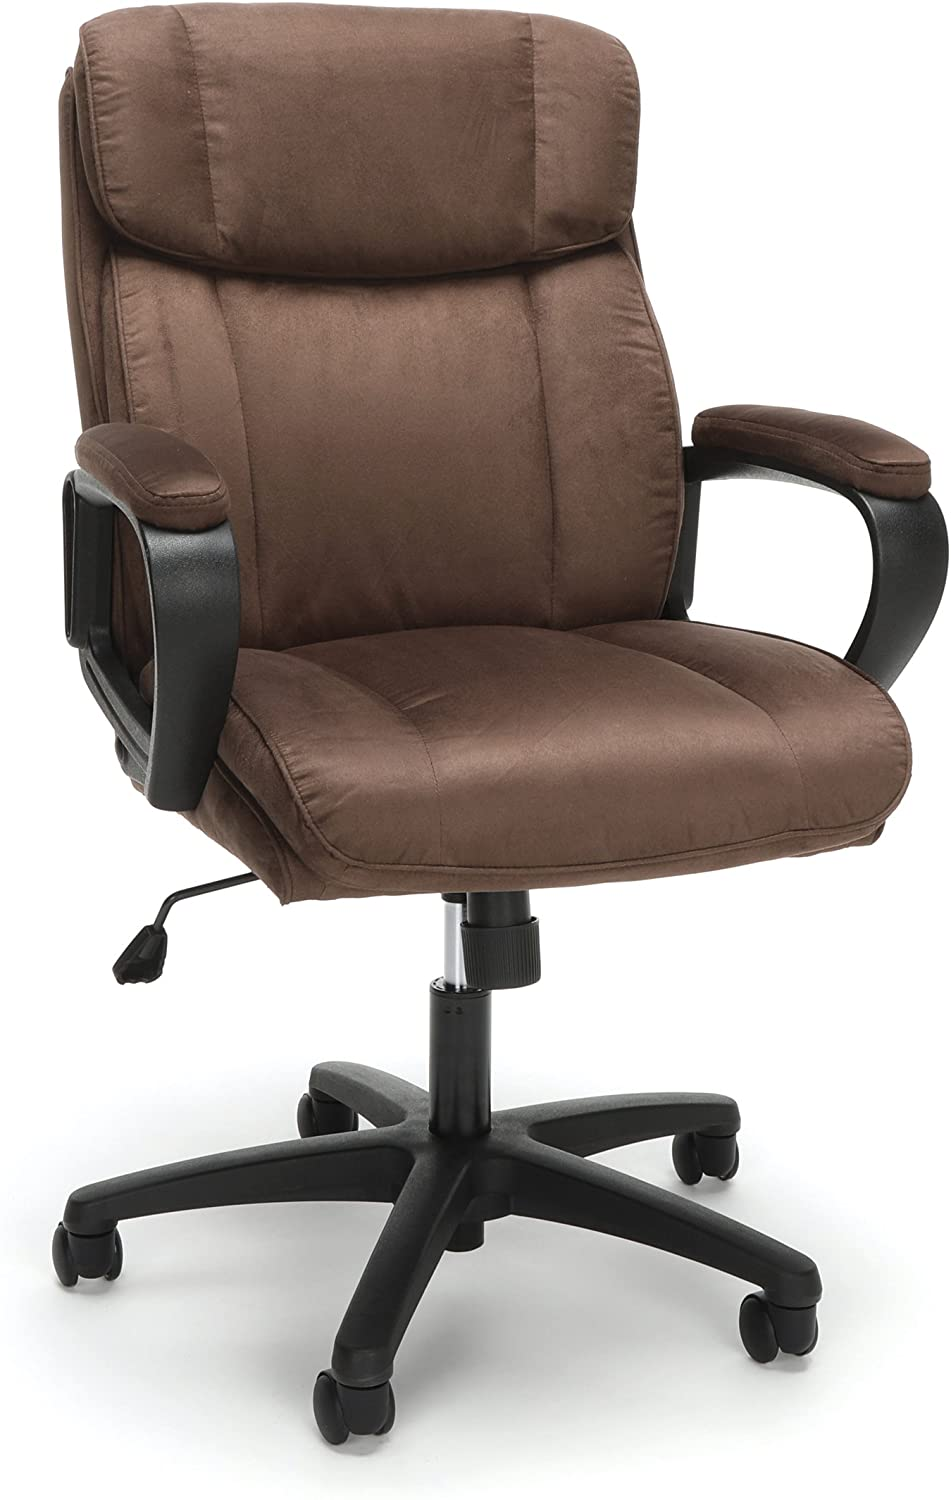 OFM Essentials Collection Plush Microfiber Office Chair, in Brown (ESS-3082-BRN)